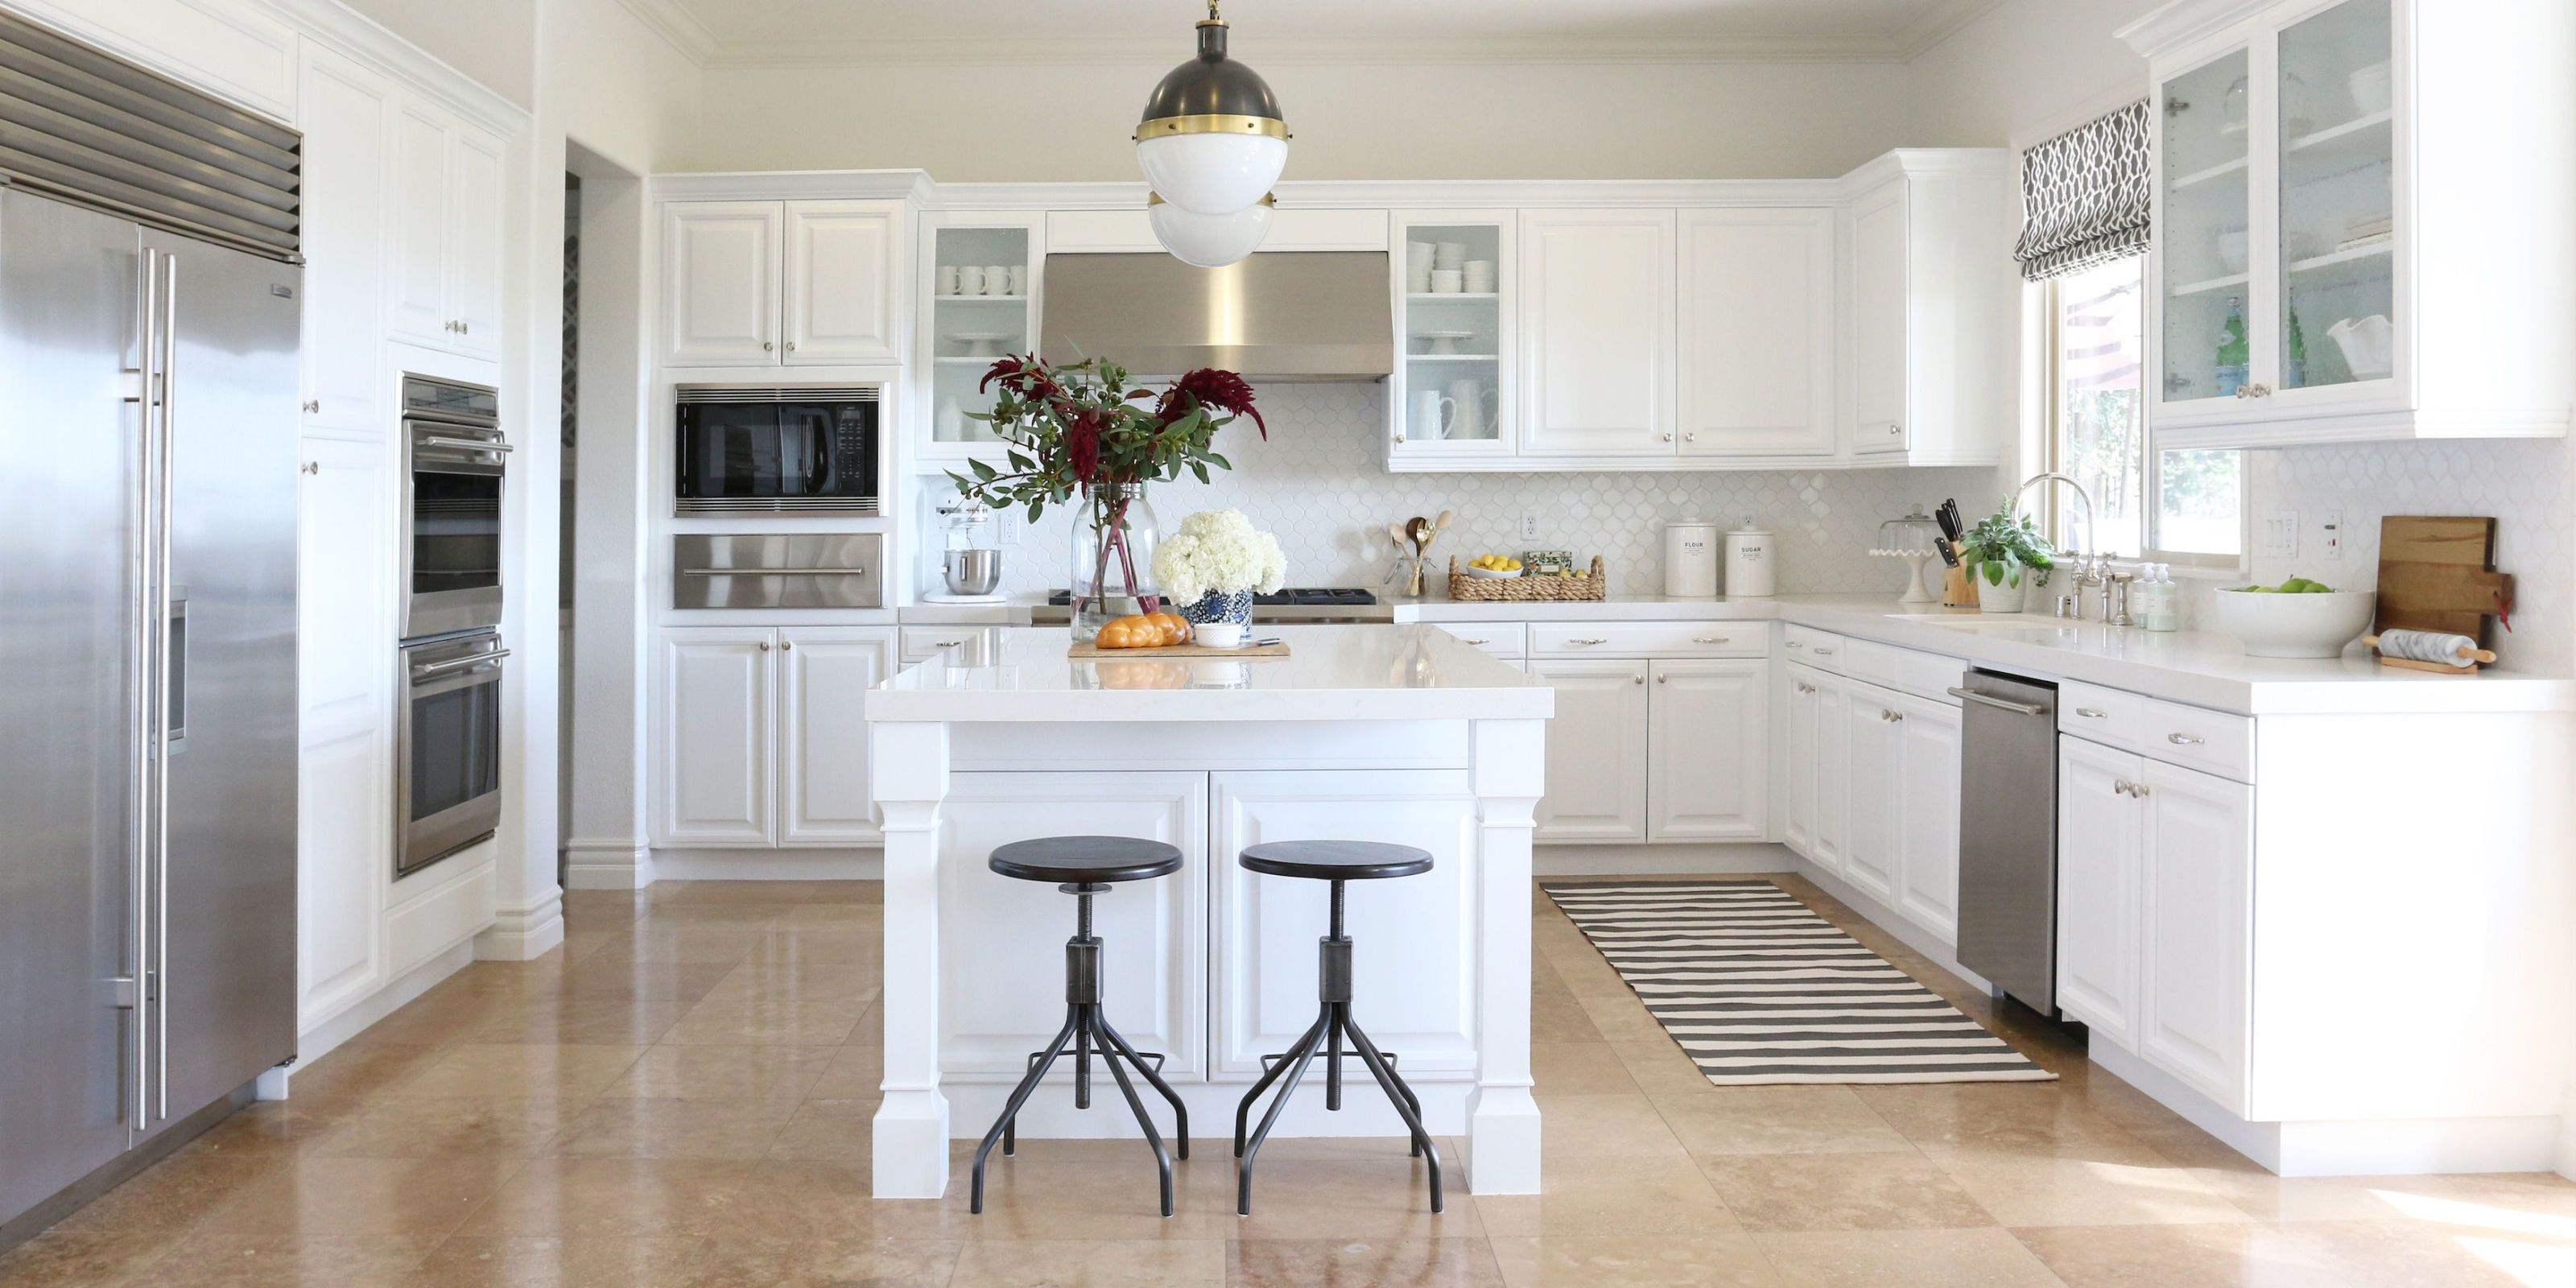 Bon Bright, White Cabinetry Bounces Light And Makes For A Modern Kitchen.